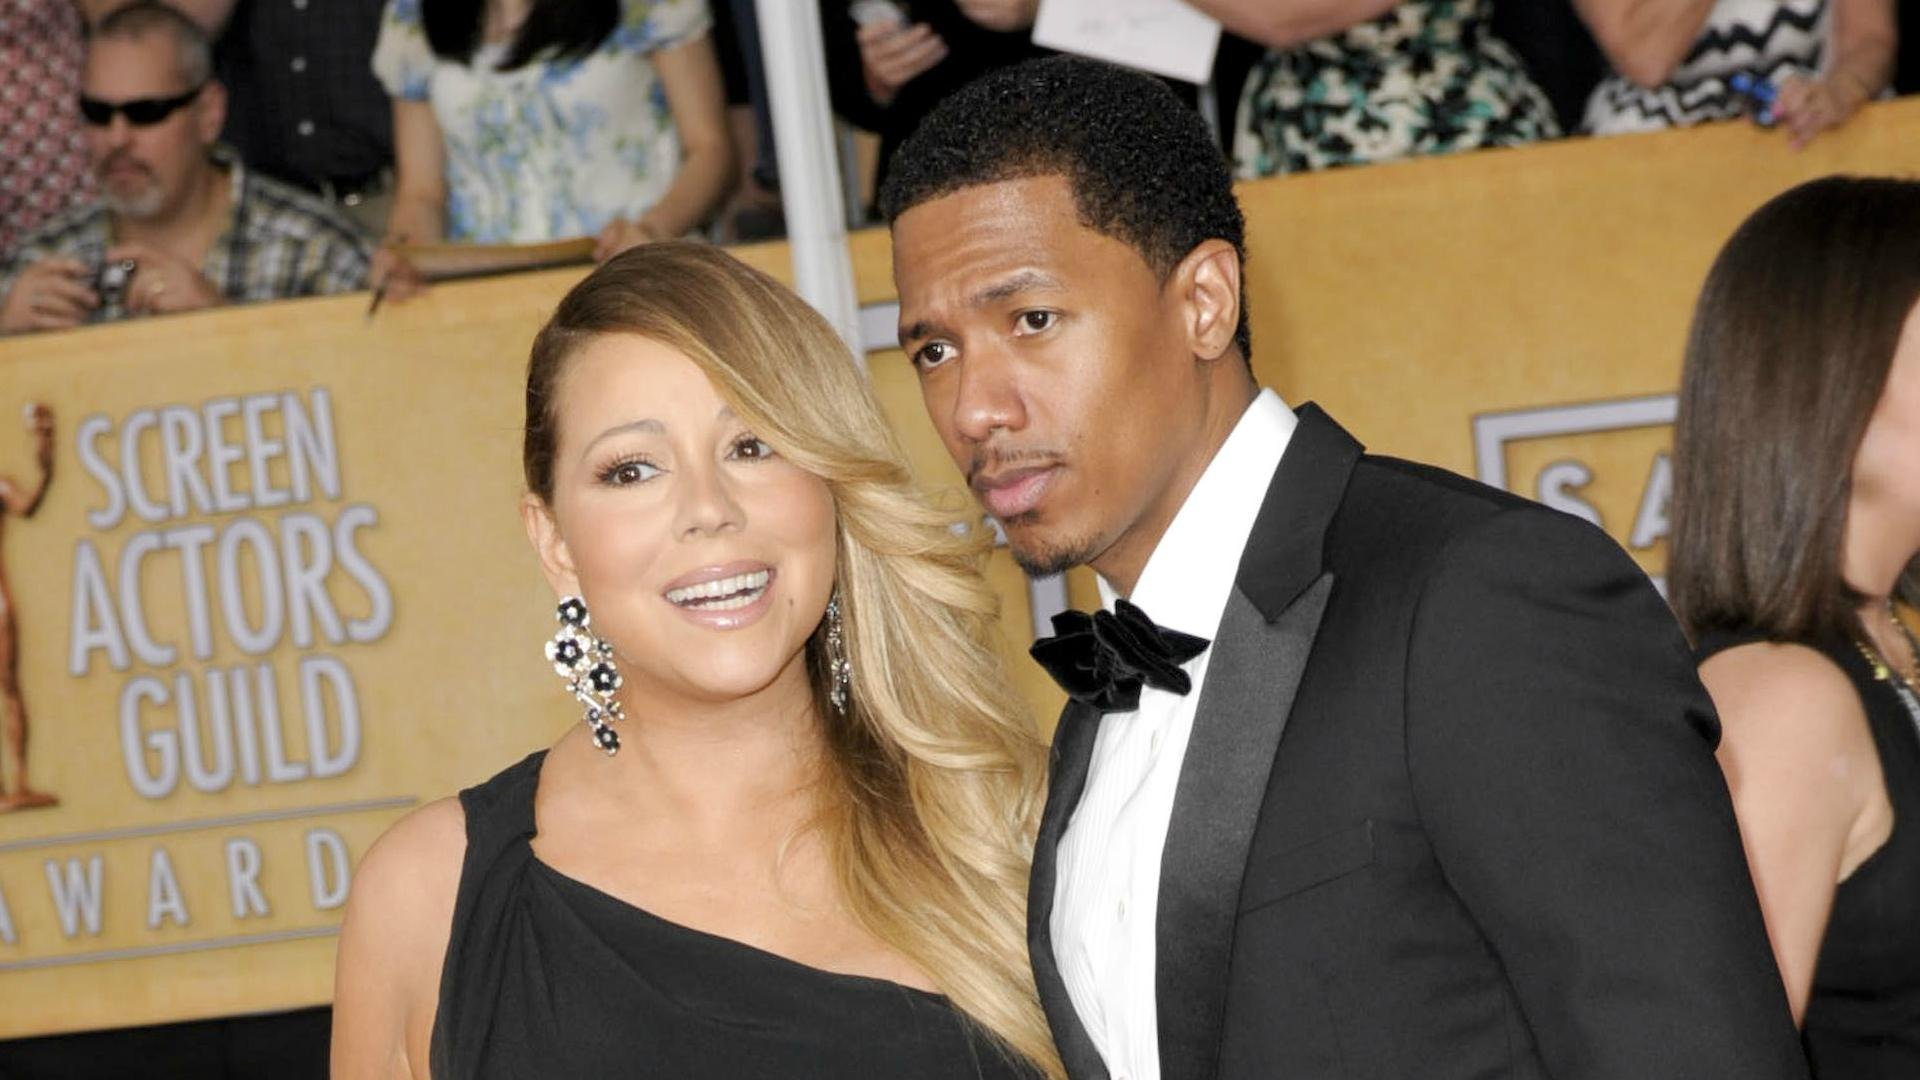 Mariah Carey and Nick Cannon spark new divorce rumors with homes for sale